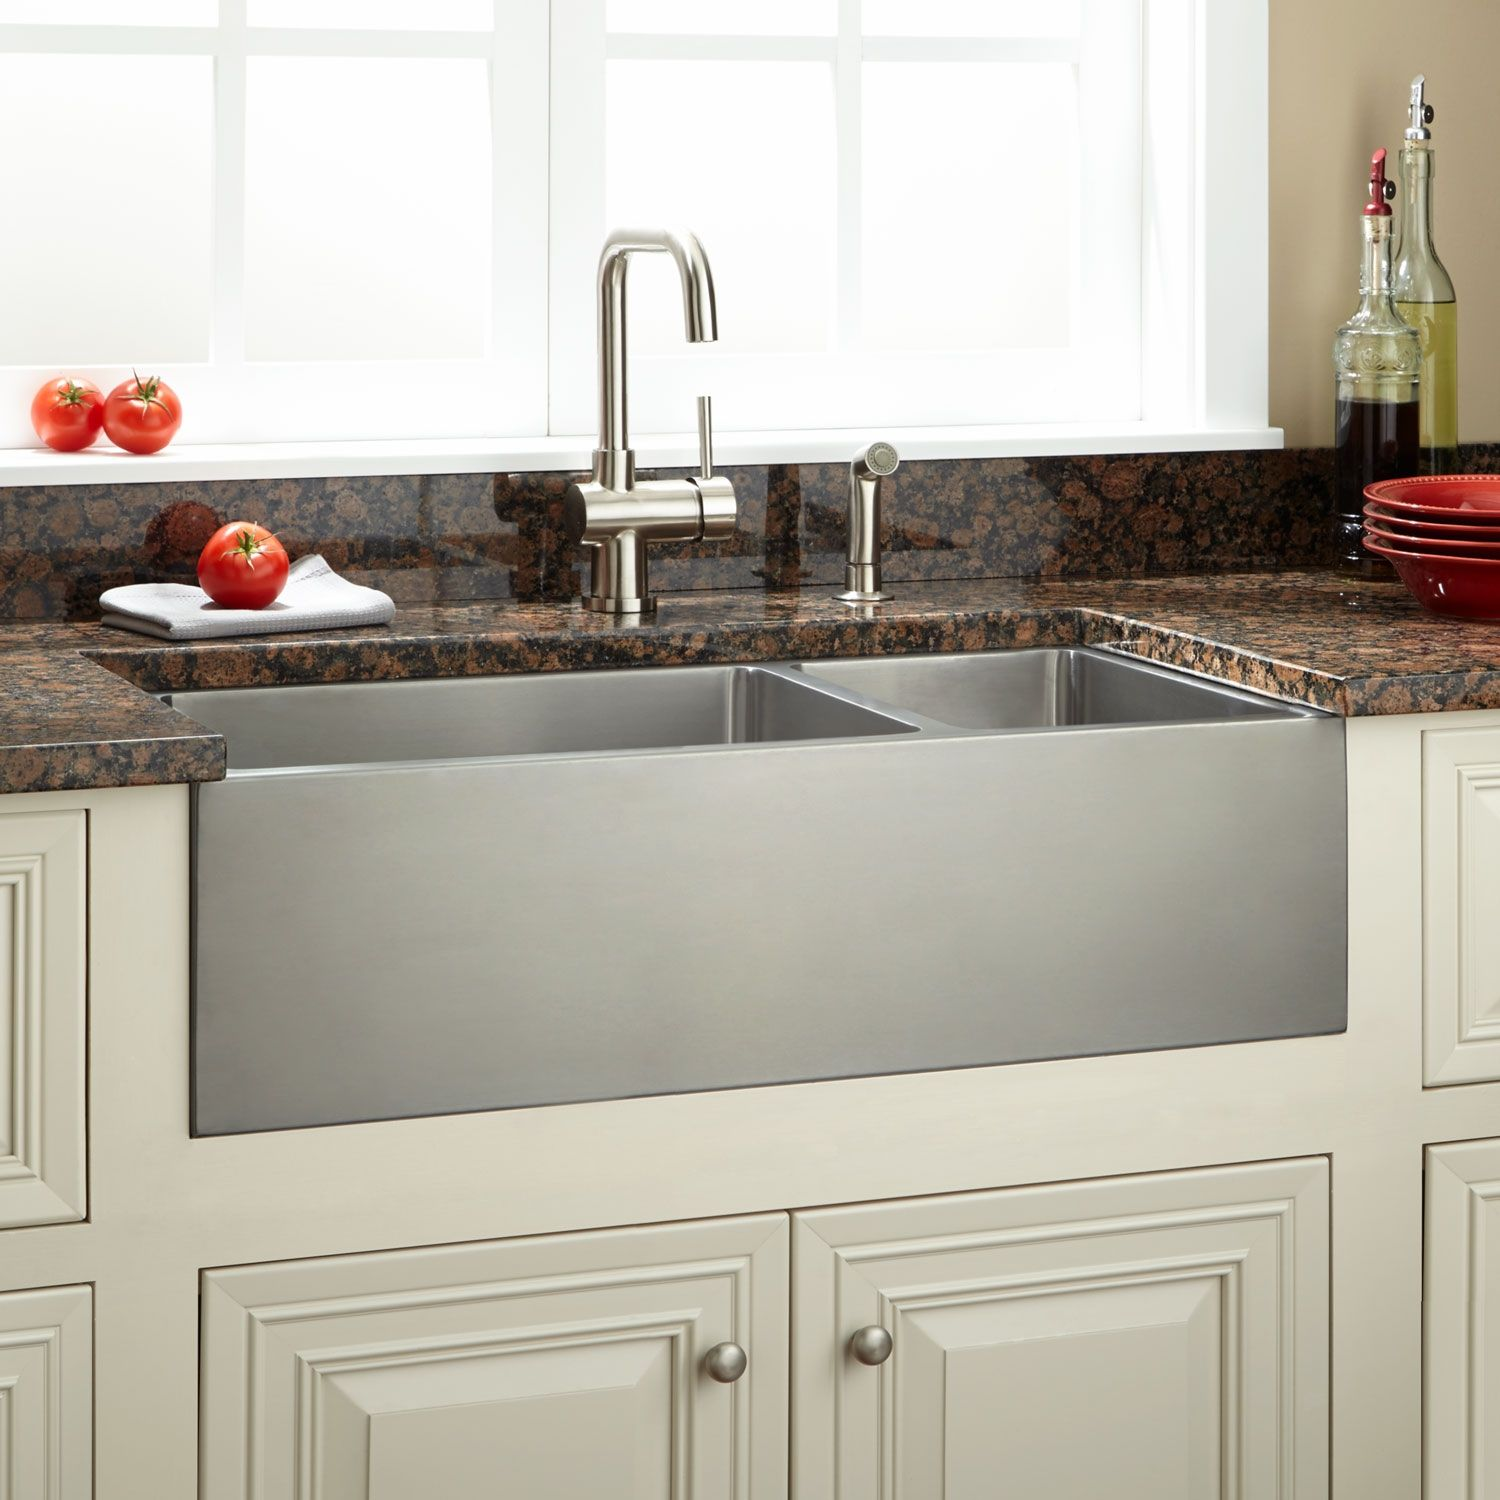 33 Optimum 70 30 Offset Double Bowl Stainless Steel Farmhouse Sink Beveled